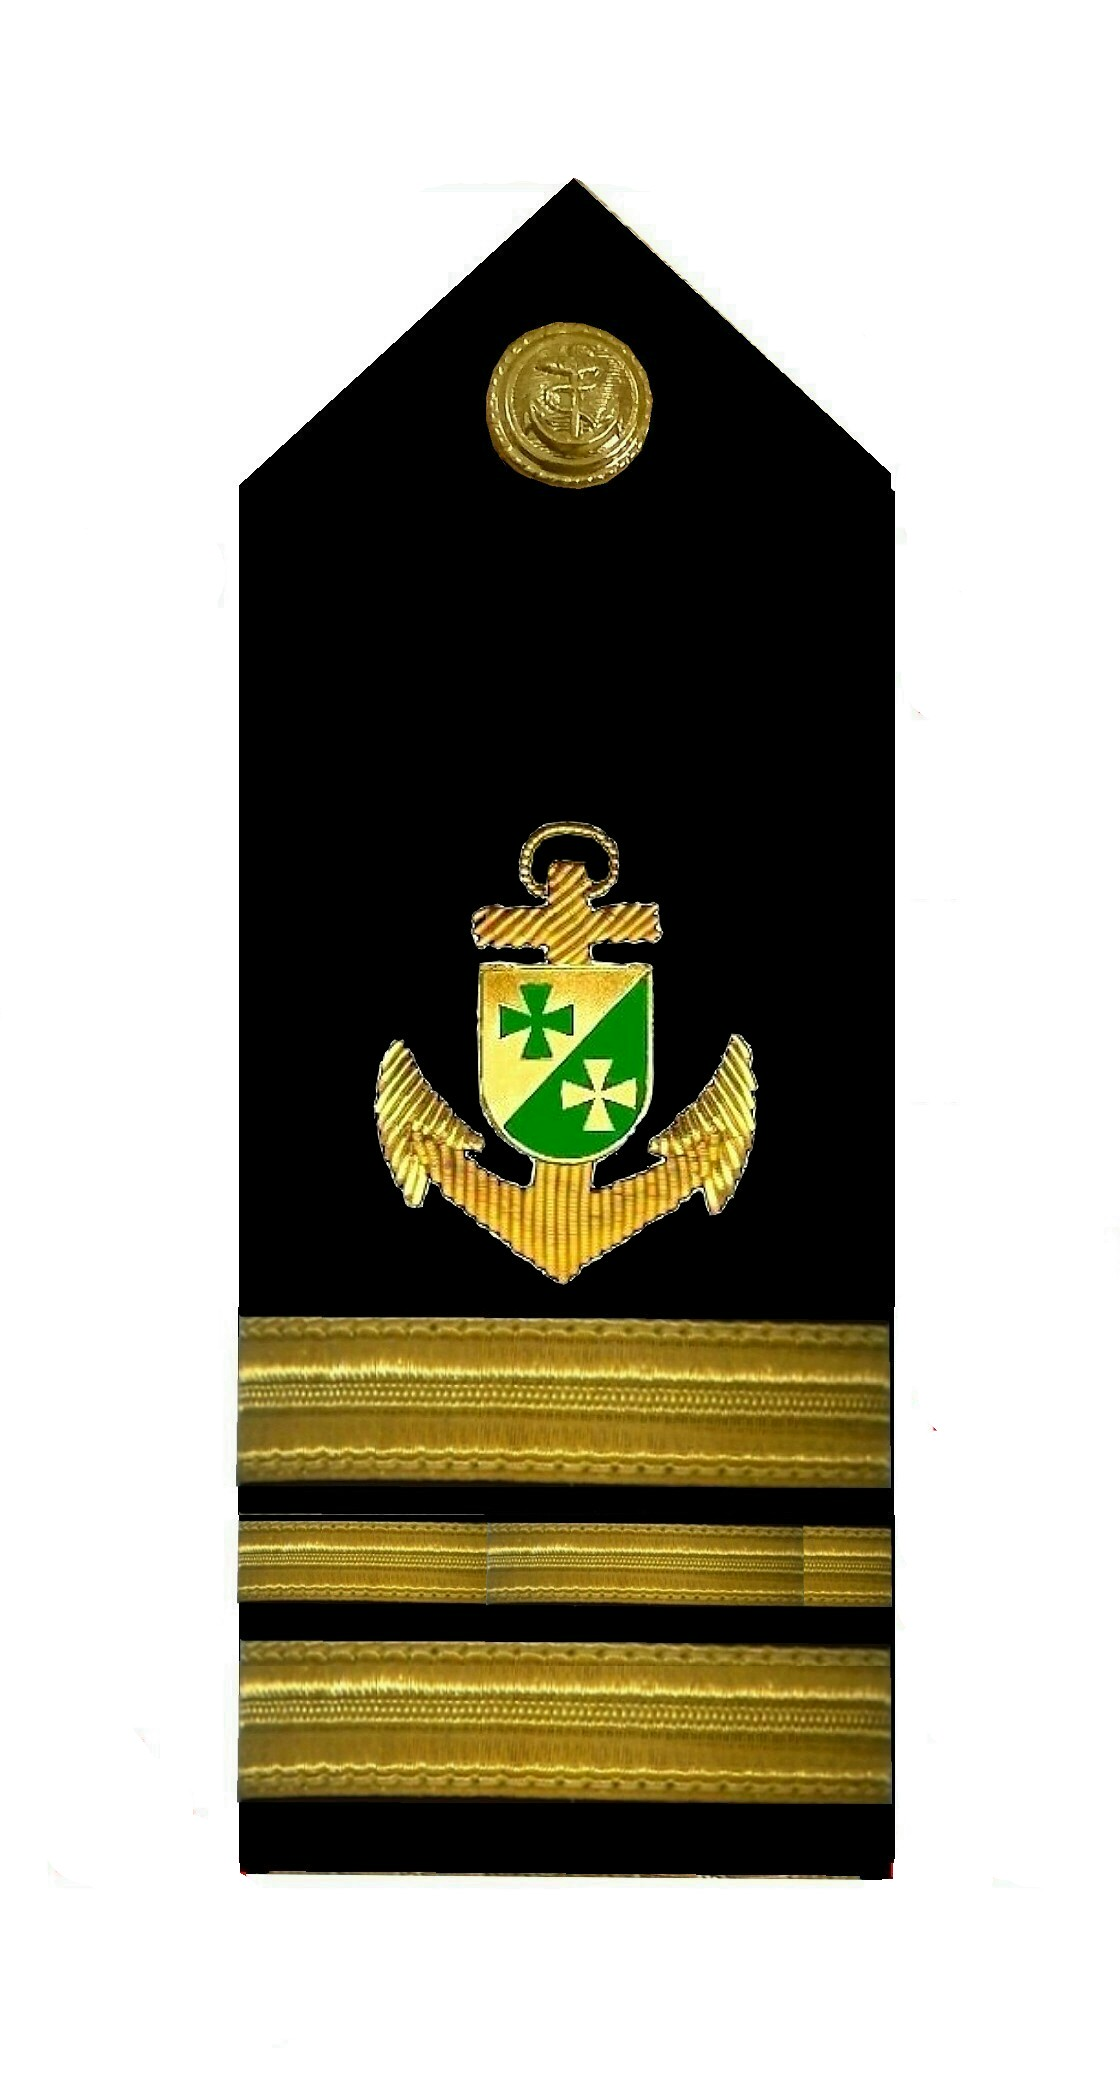 Offcerl with scale Lieutenant Commander